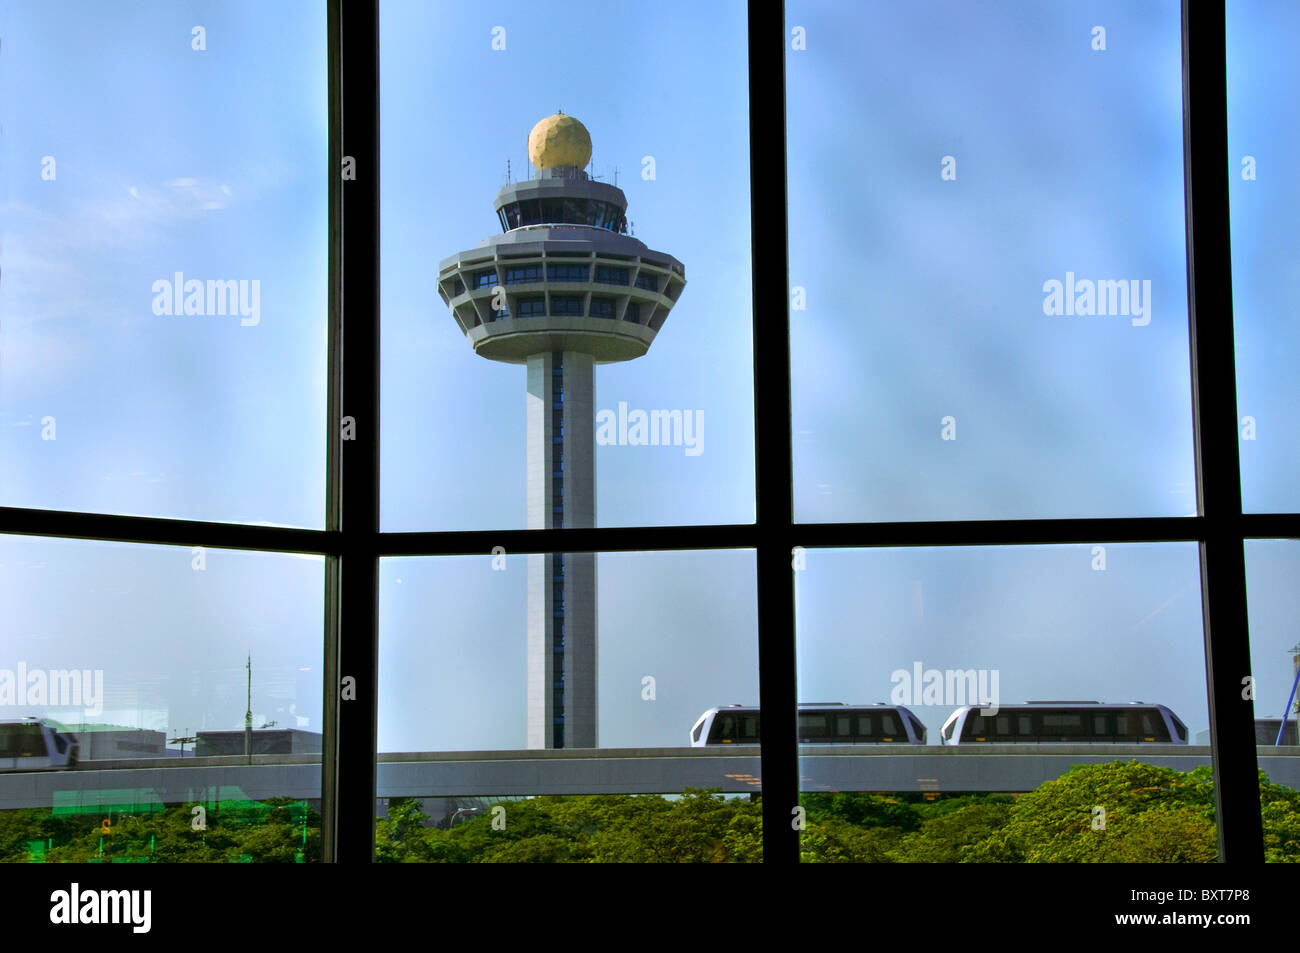 Flight control tower at new modern airport terminal in Singapore southeast Asia - Stock Image